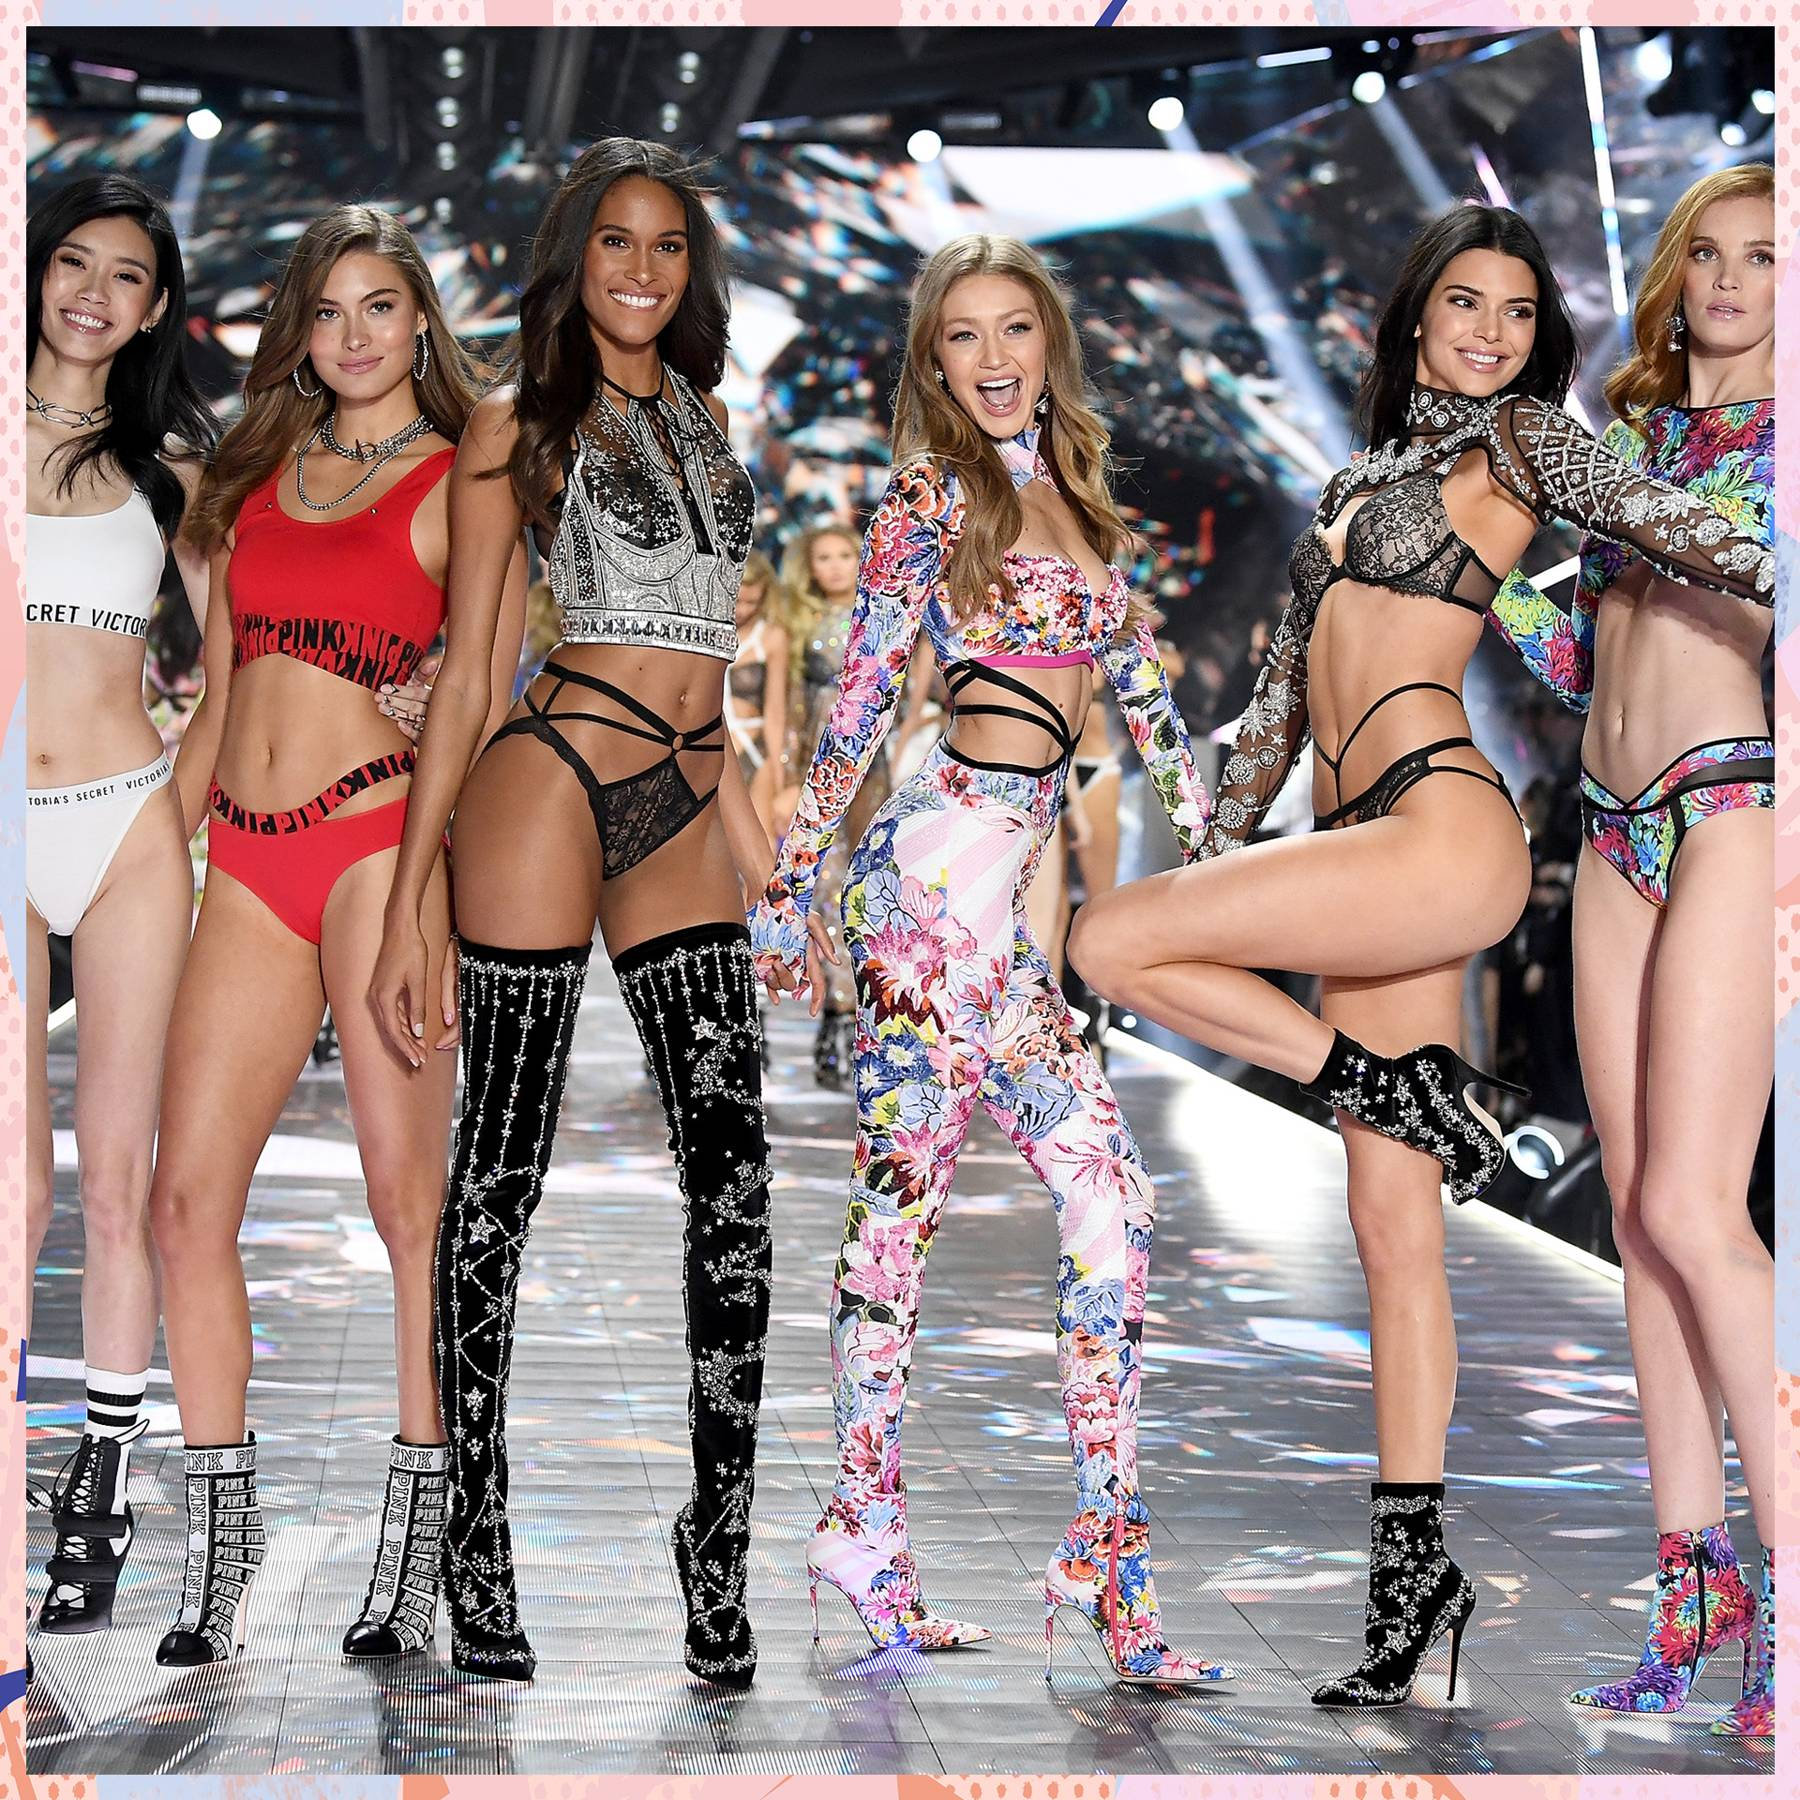 This year's Victoria's Secret Fashion Show has officially been cancelled